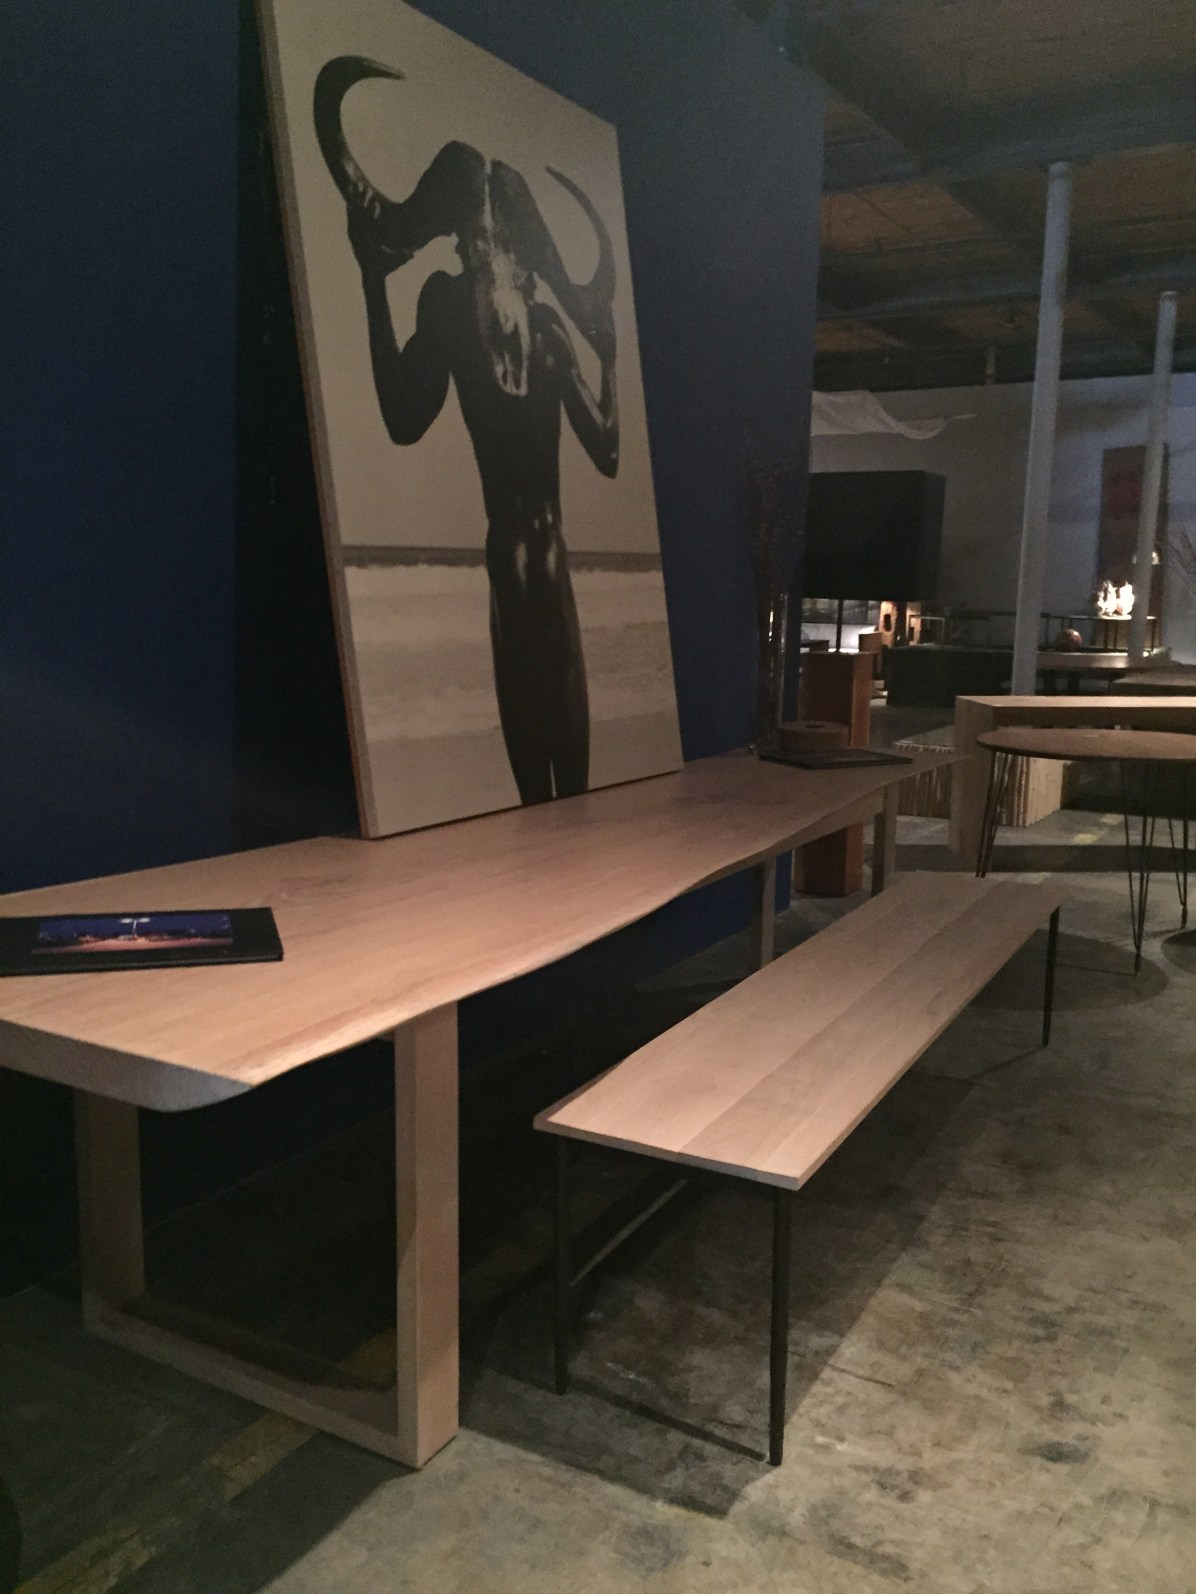 glorious 11' table console